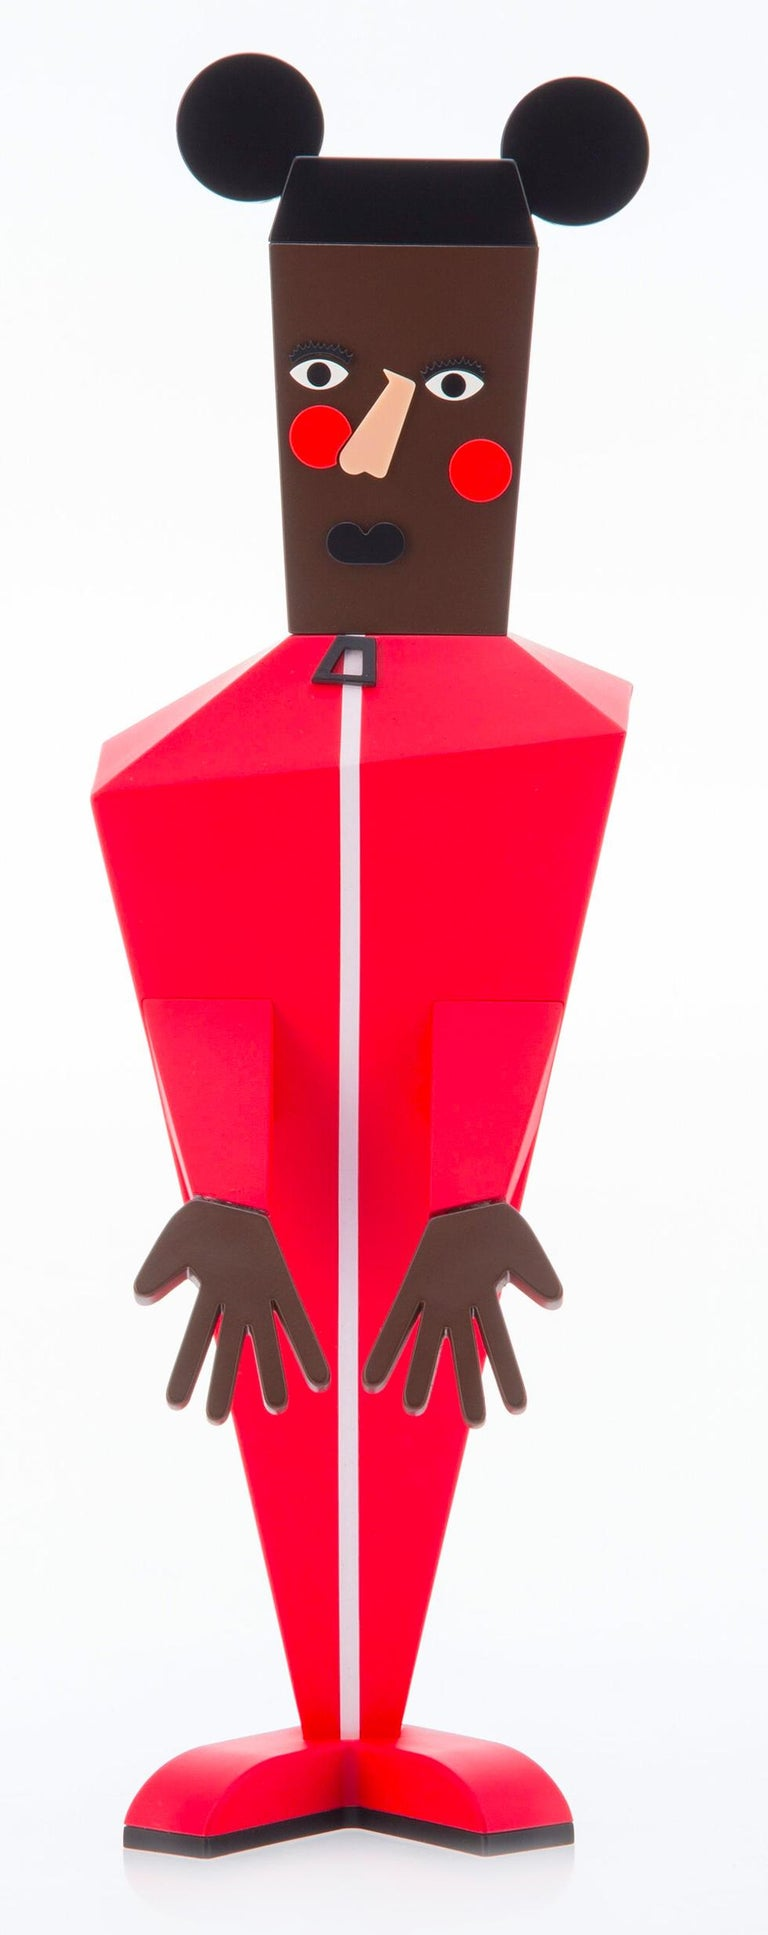 Nina Chanel Abney Baby:  Nina Chanel's 'Baby' figure strikingly re-imagines Mickey Mouse as a man dressed in a bright red jumpsuit, with mirroring red circles stamped on the cheeks. Constructed with sharp angles and an asymmetrical mold, the figure